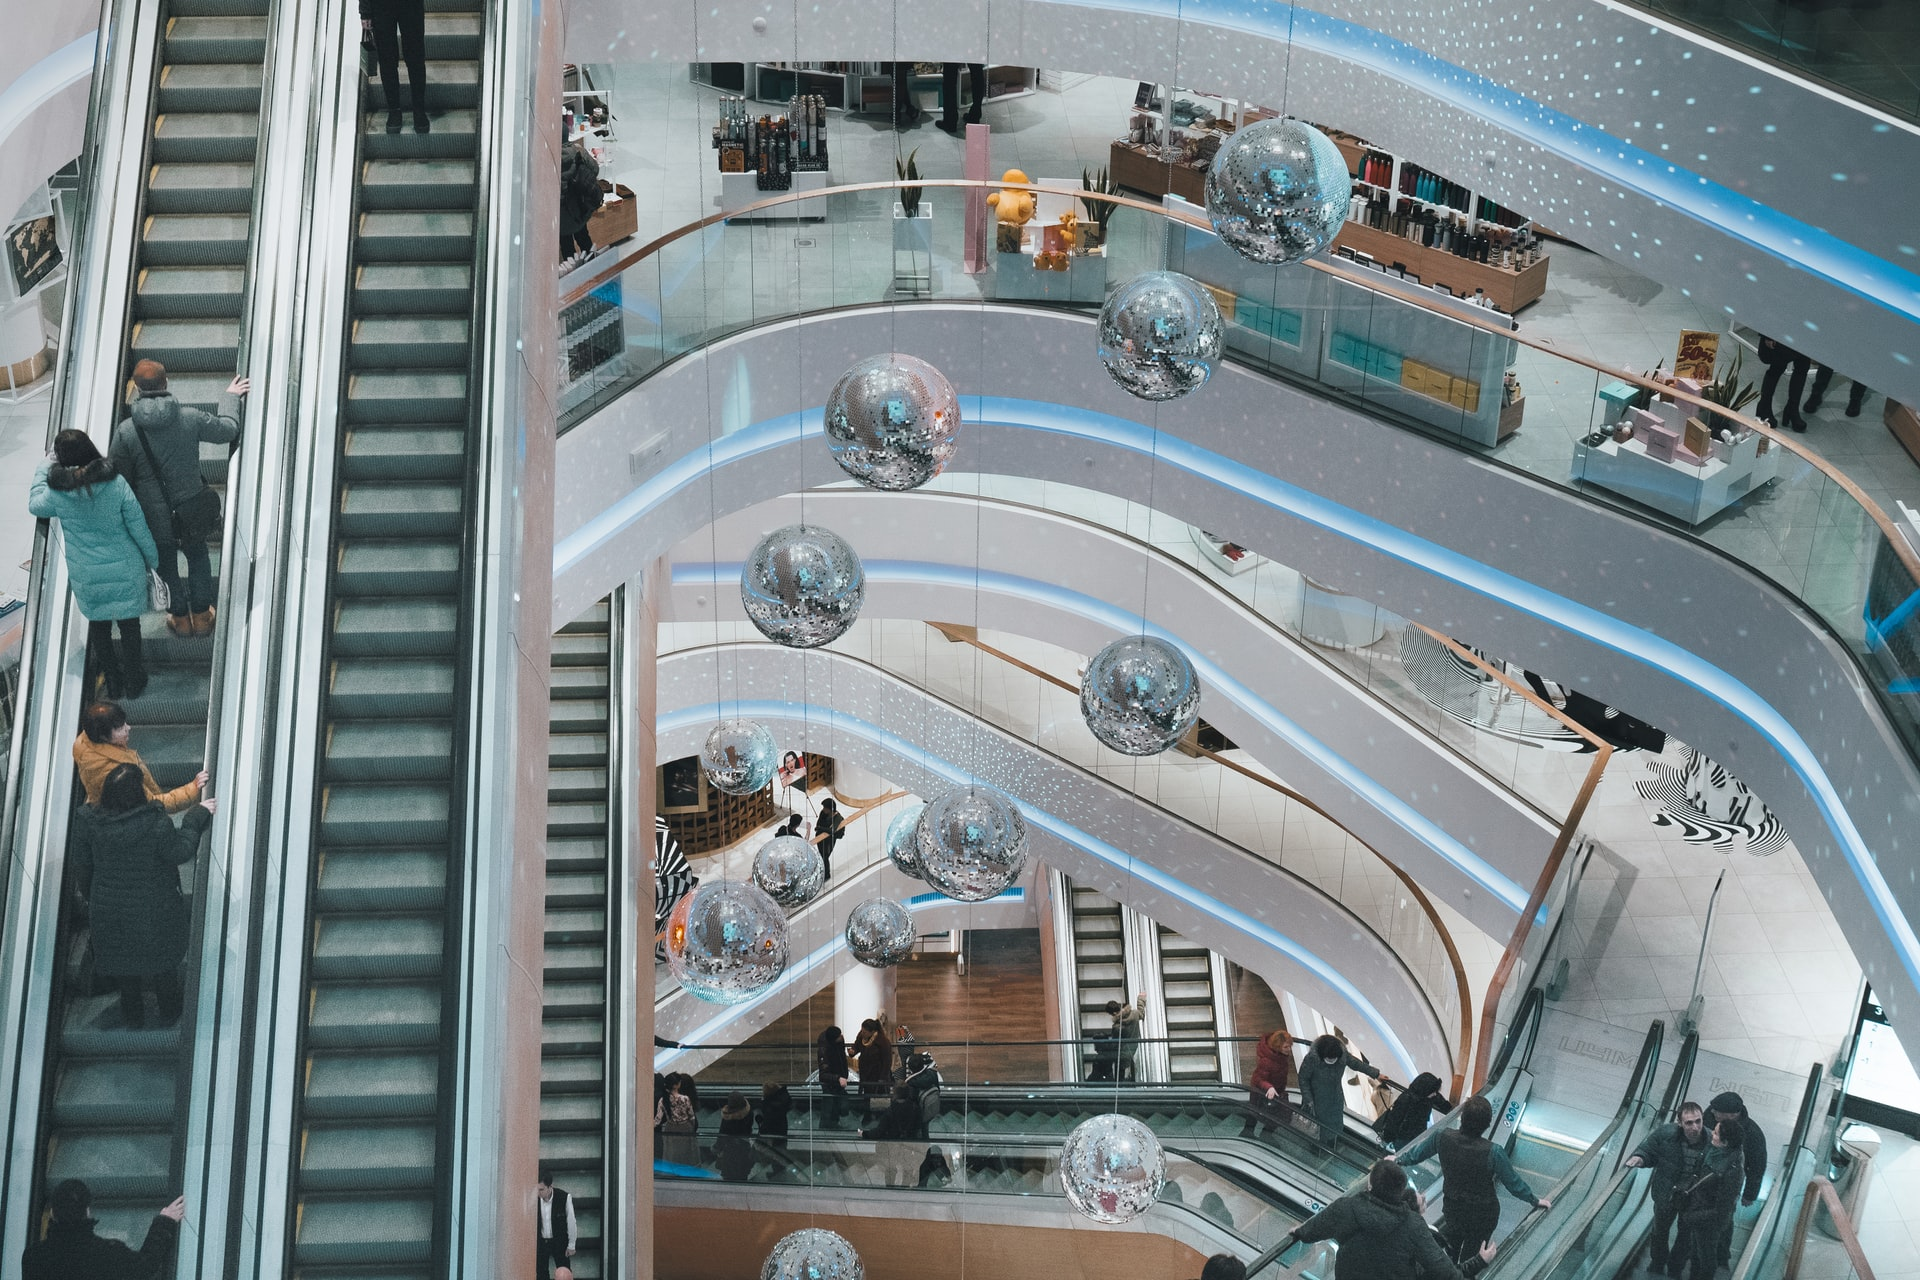 Retail Real Estate Could See V-Shaped or U-Shaped Recovery in 2H 2020